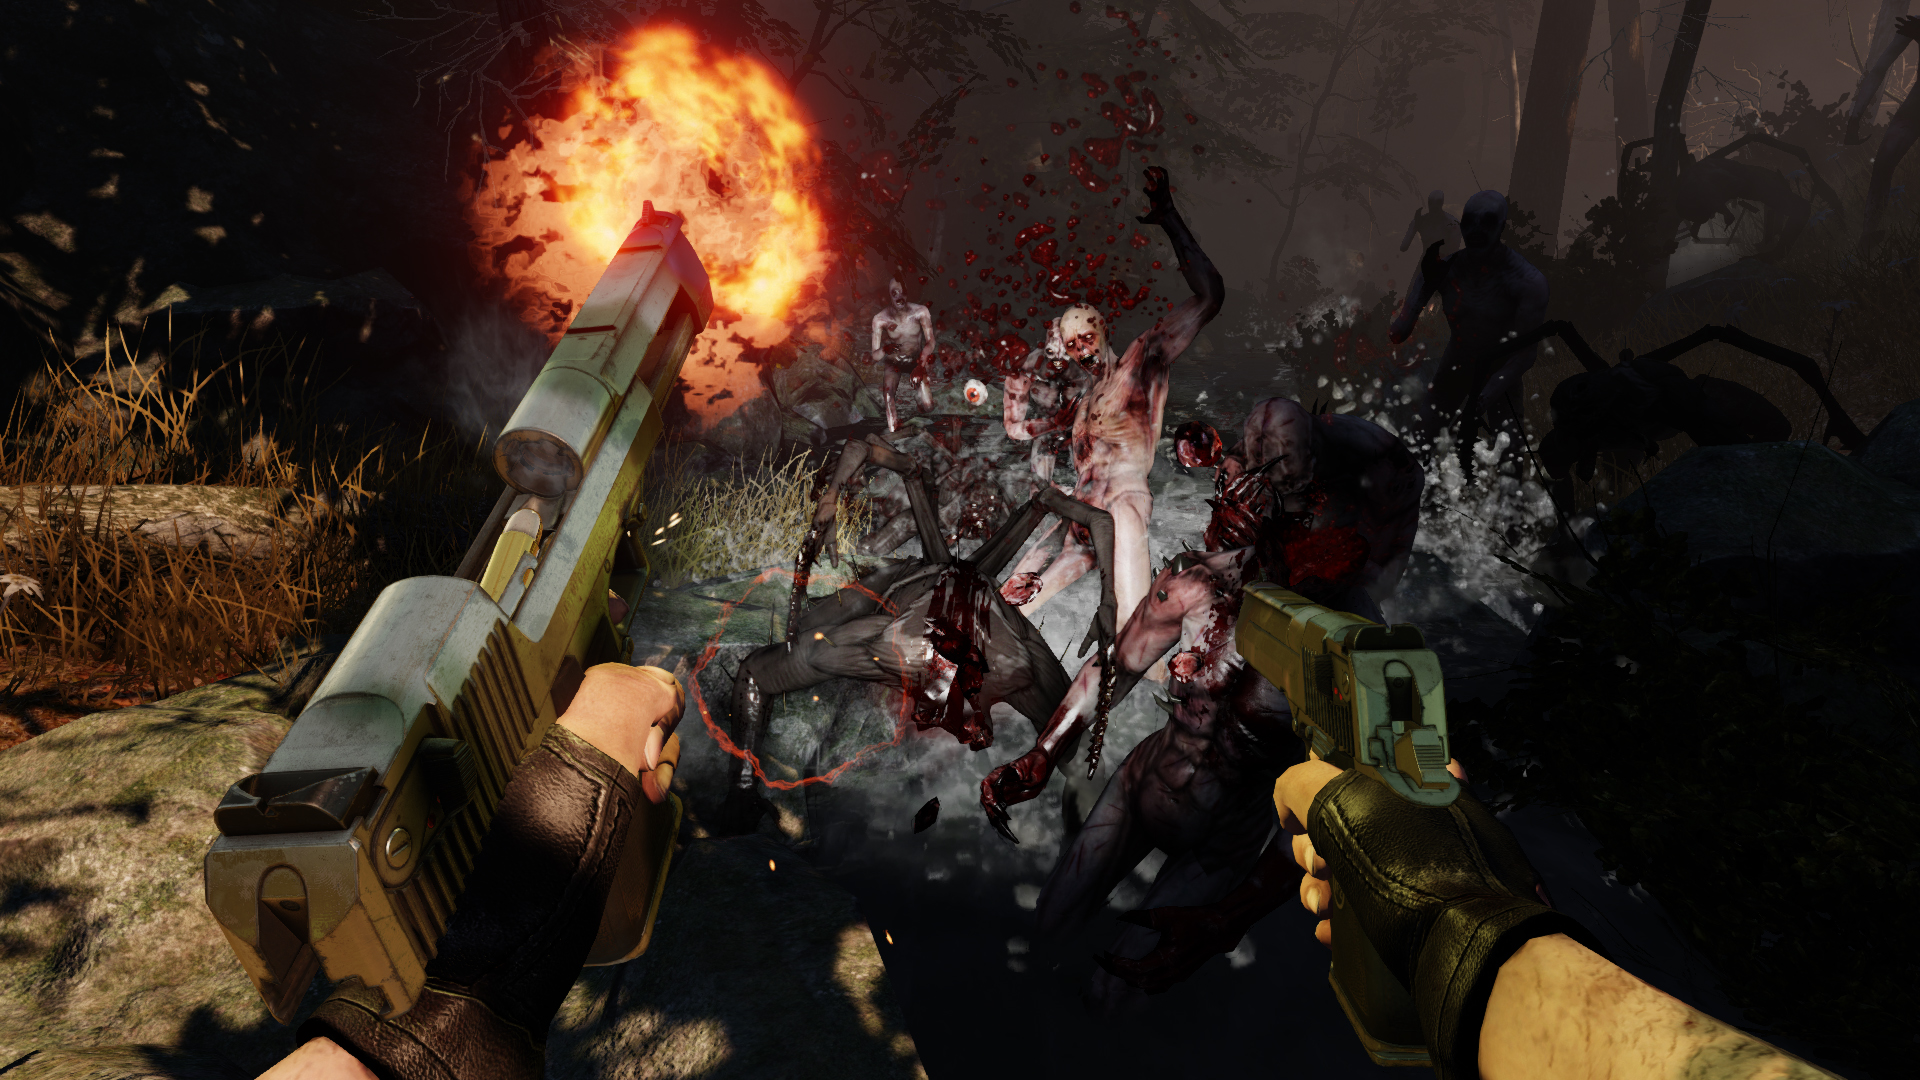 Bullet For My Valentine Wallpaper Hd Killing Floor 2 Return Of The Patriarch Hands On